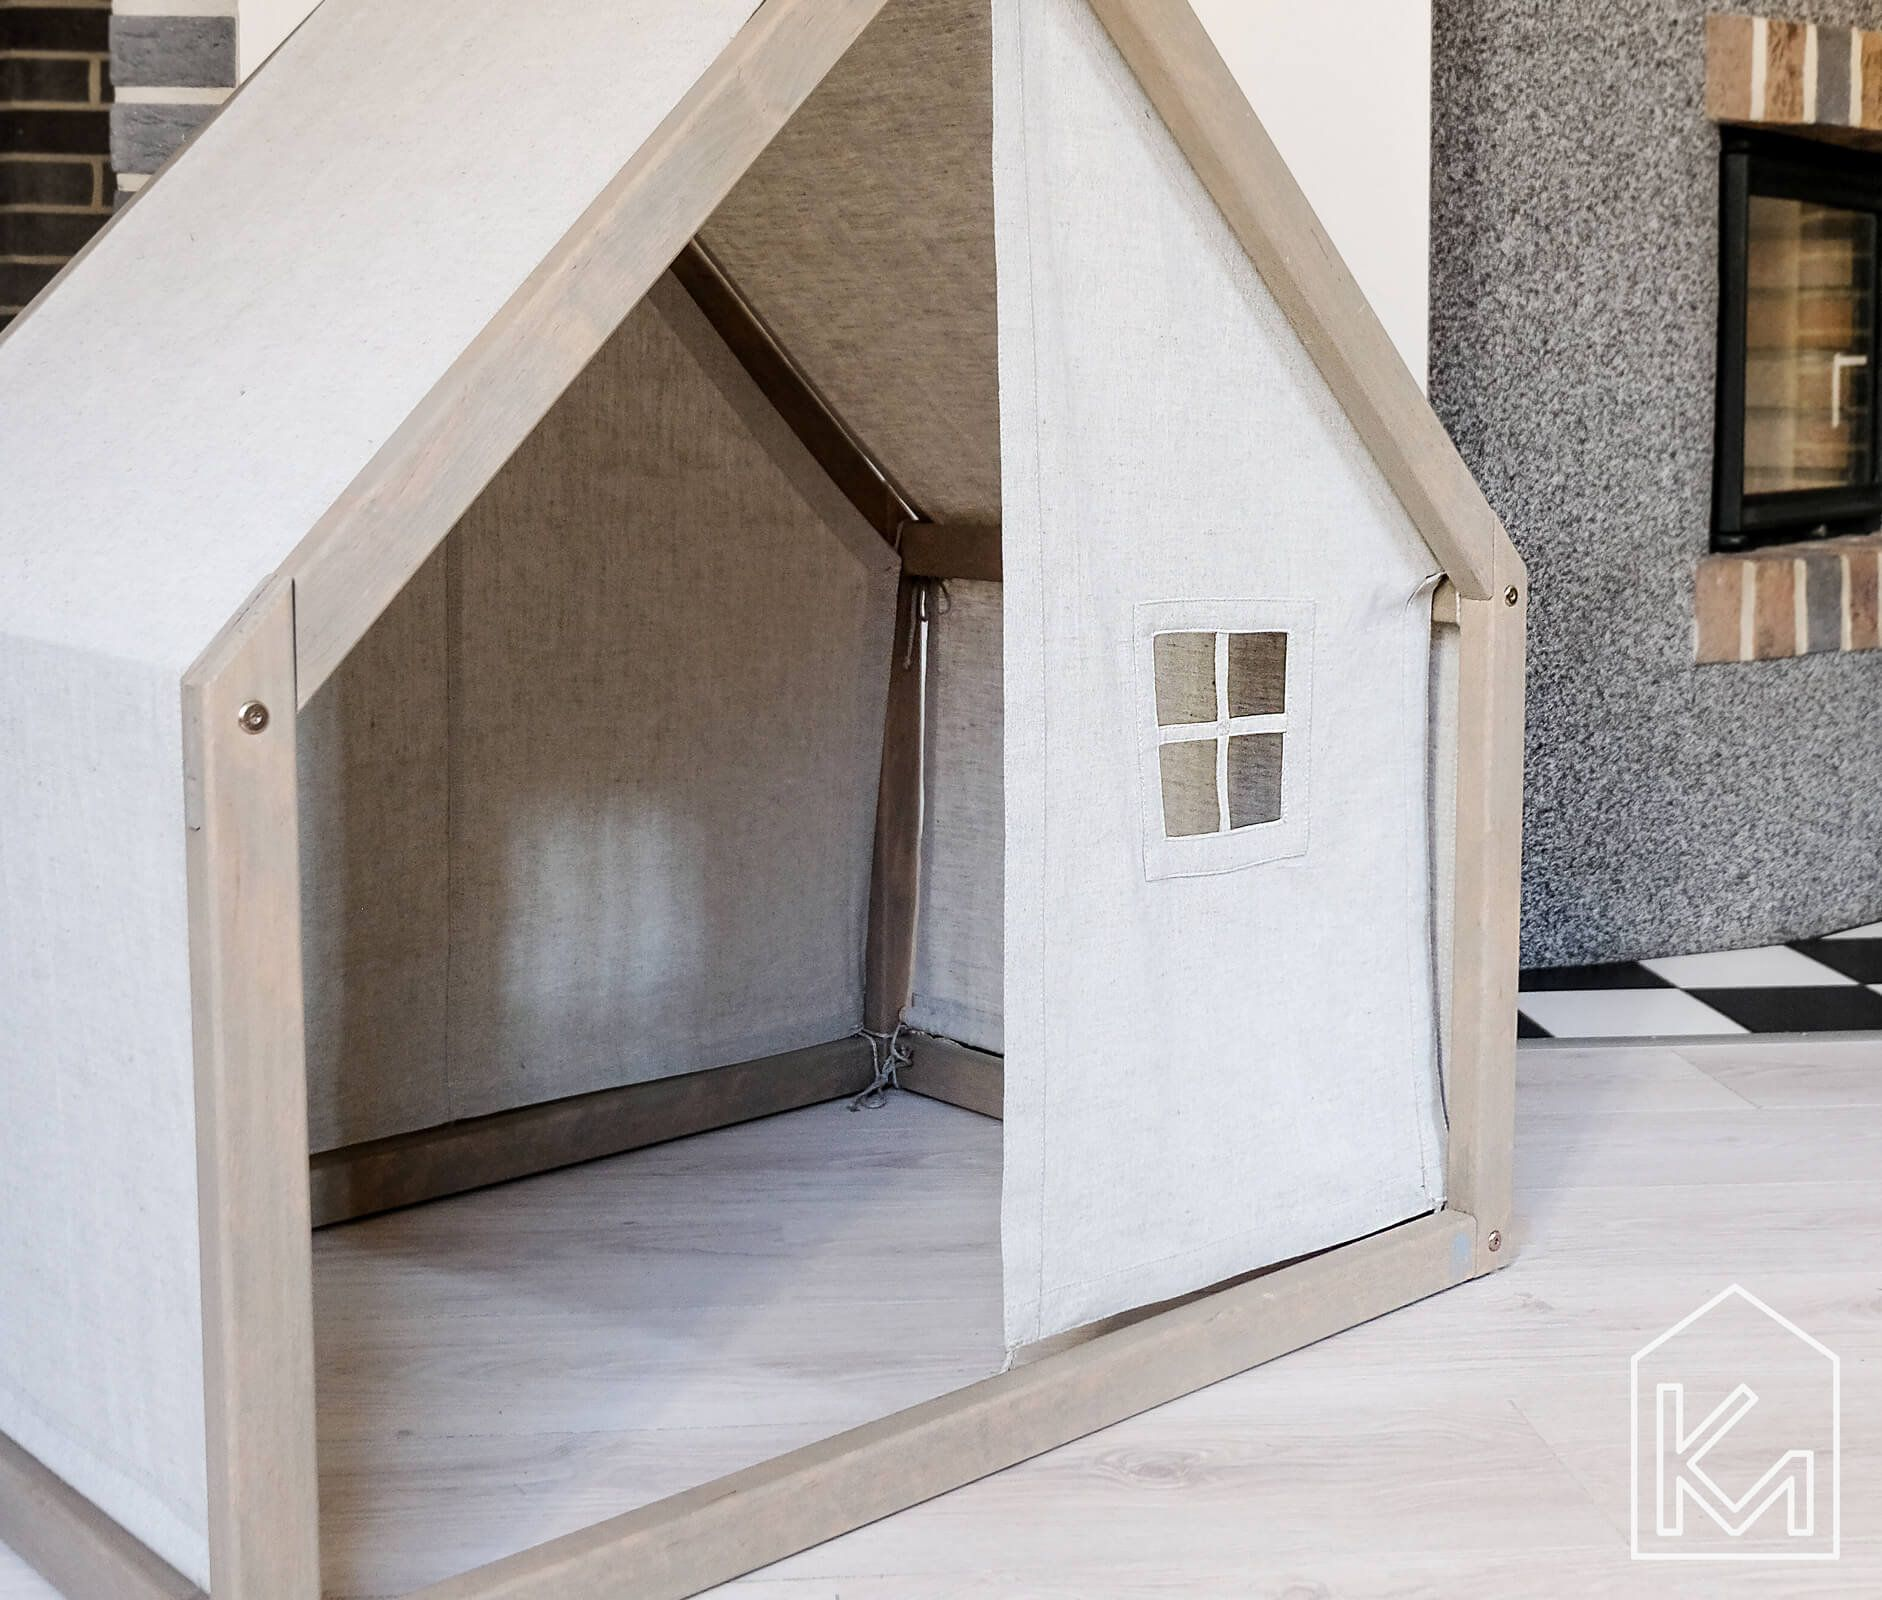 Modern Dog House With A Front And Back Linen Cover Indoor Dog Bed Pet House Pet Bed Pet Design Furniture Dog Bed House House Bed Modern Dog Houses Indoor Dog Bed